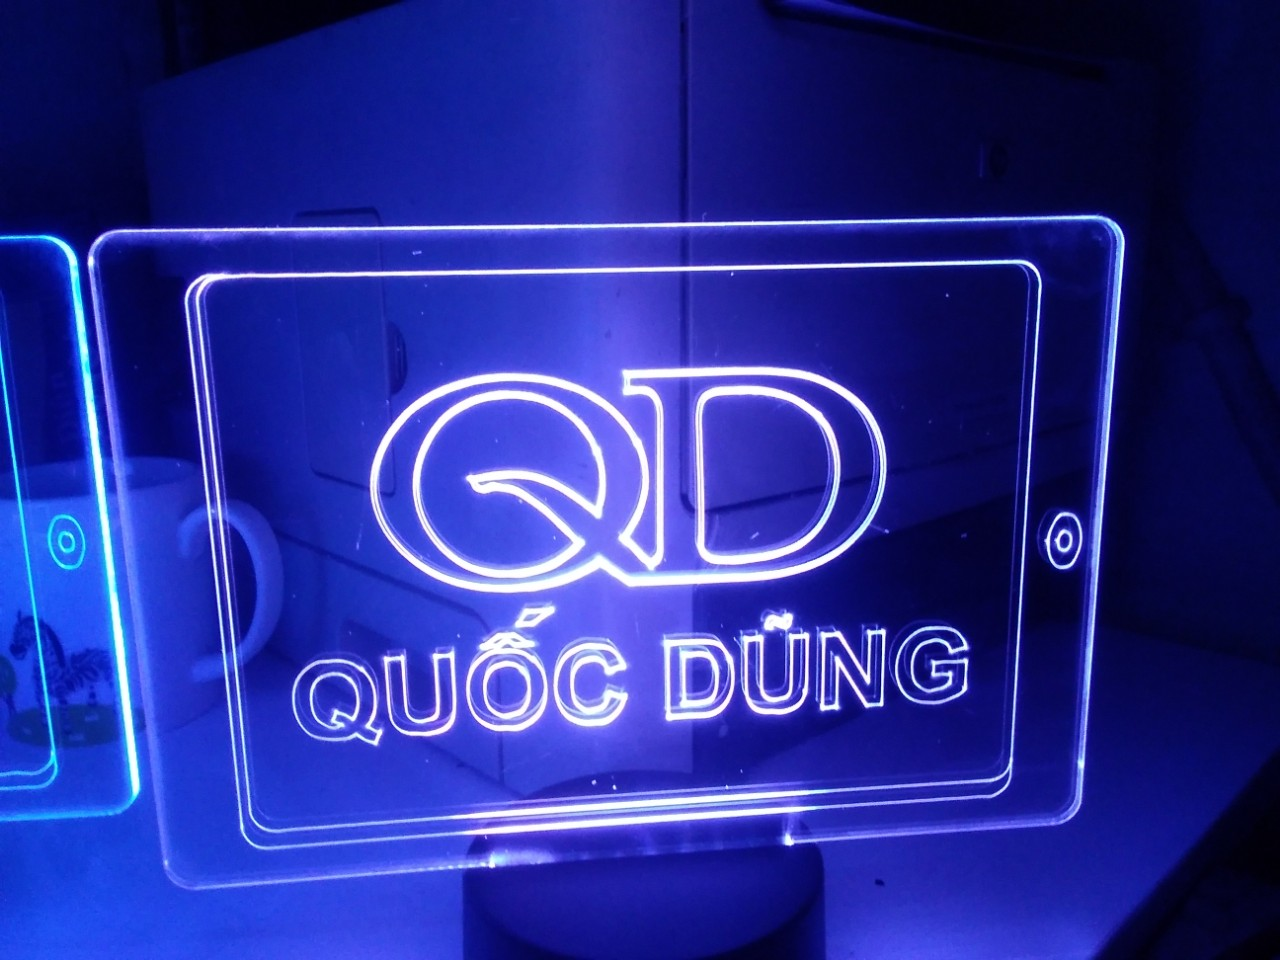 led-quoc-dung